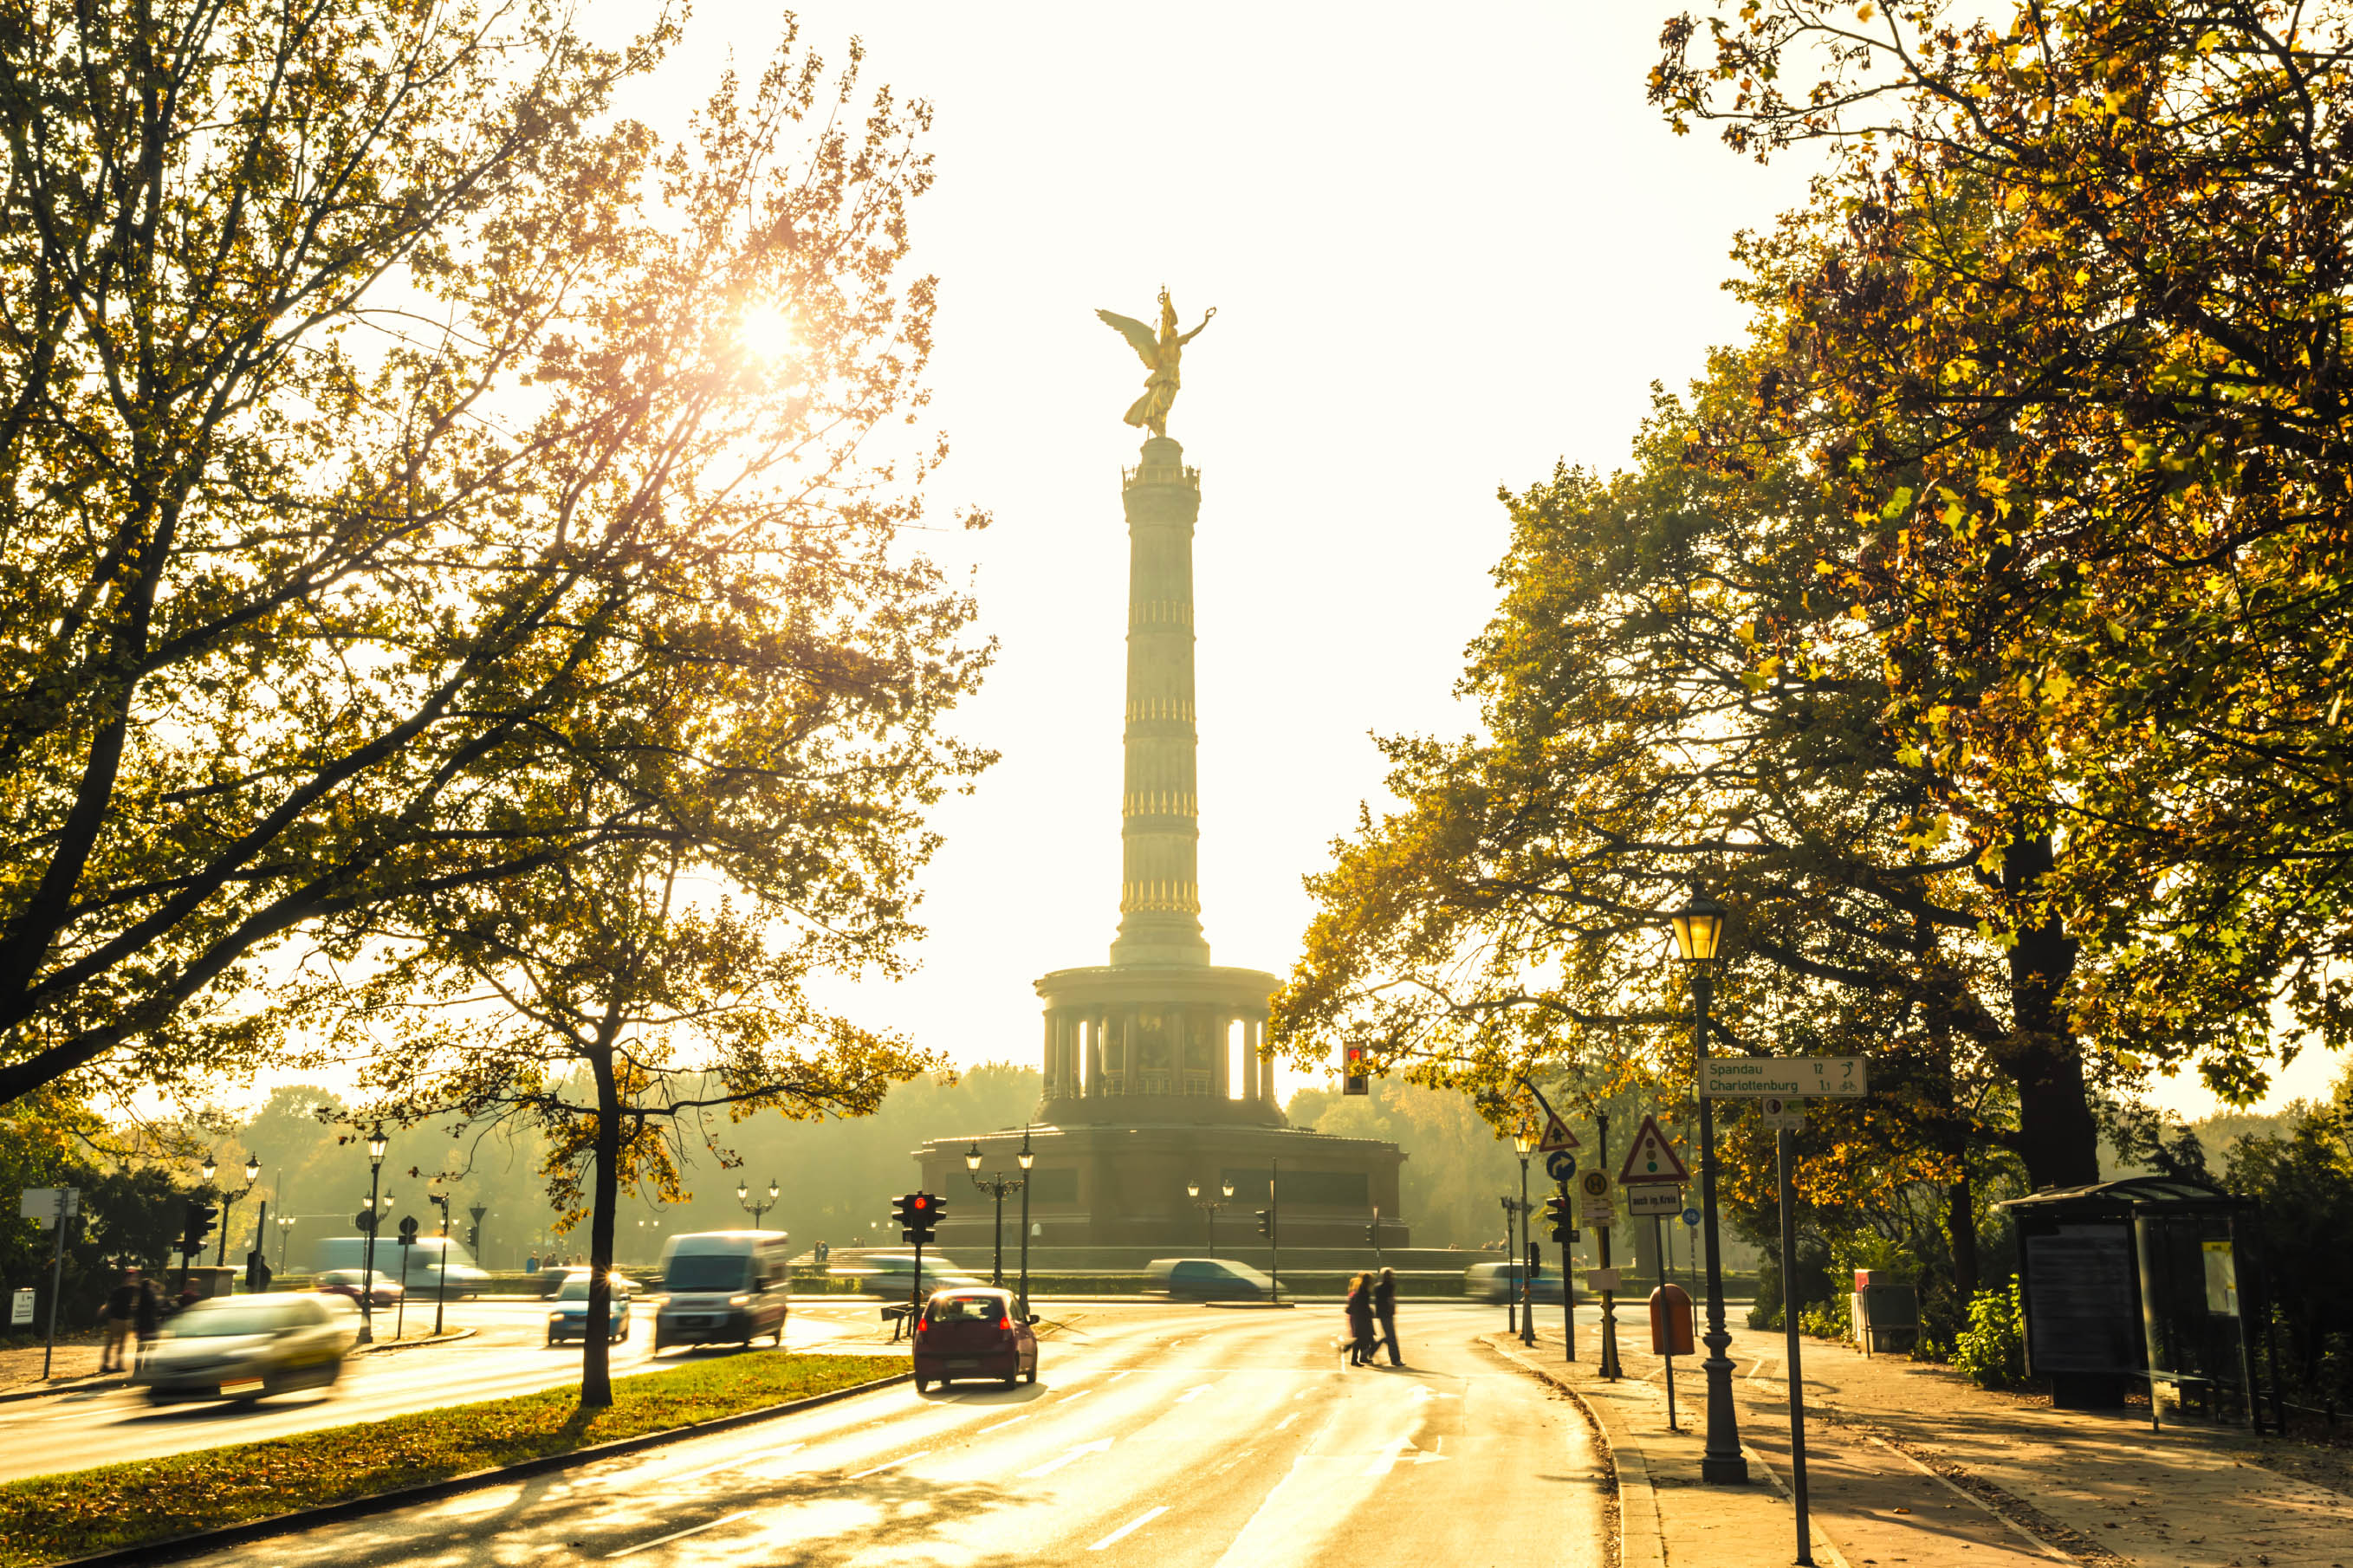 Statue Of Victoria with sunlight iStock_000050636434_Large-2